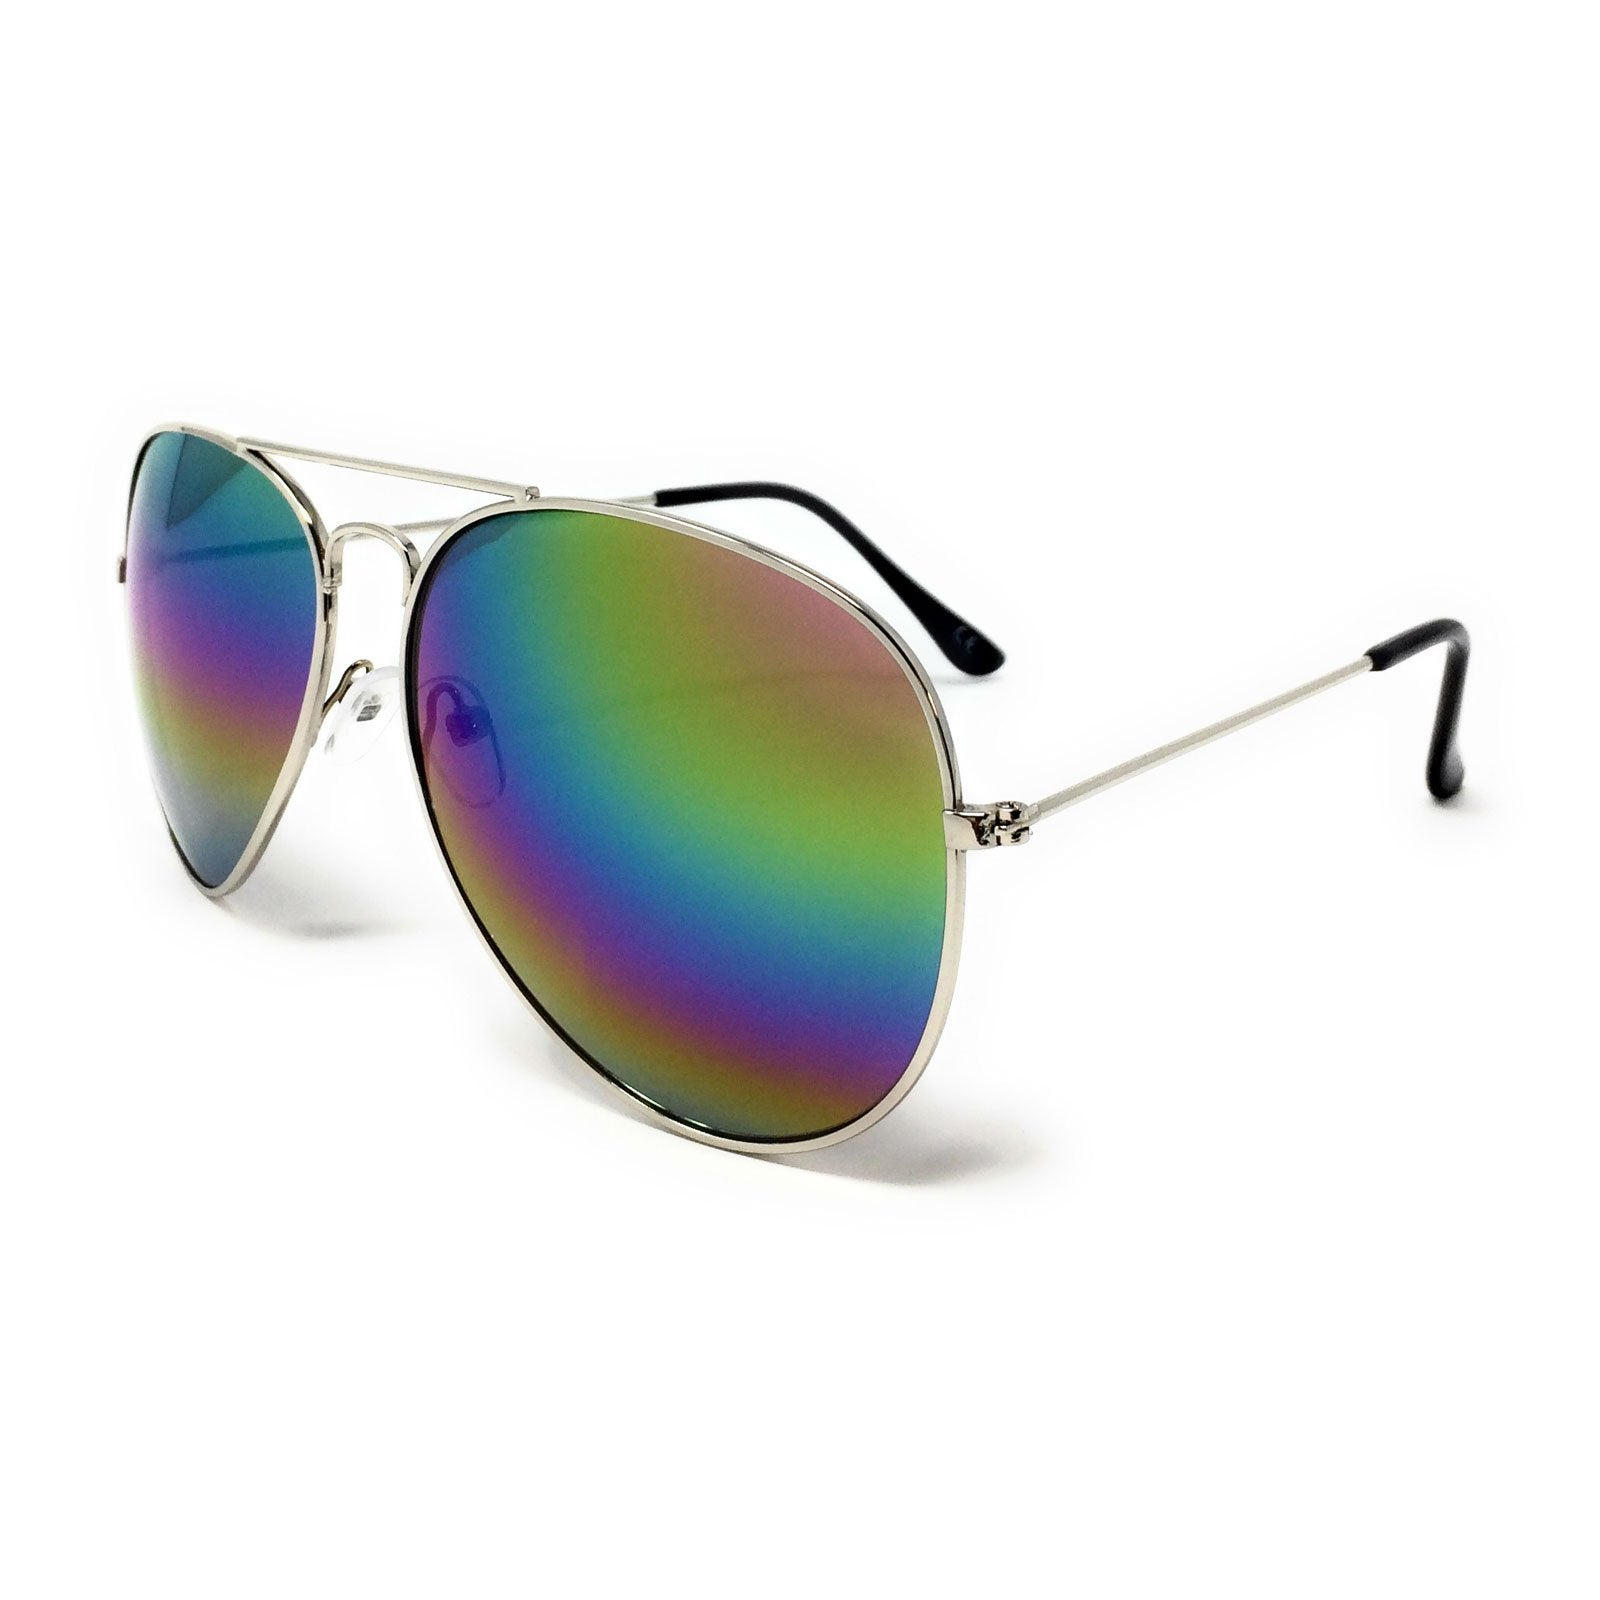 Wholesale Metal Frame Classic Sunglasses - Silver Frame, Rainbow Mirrored Lens